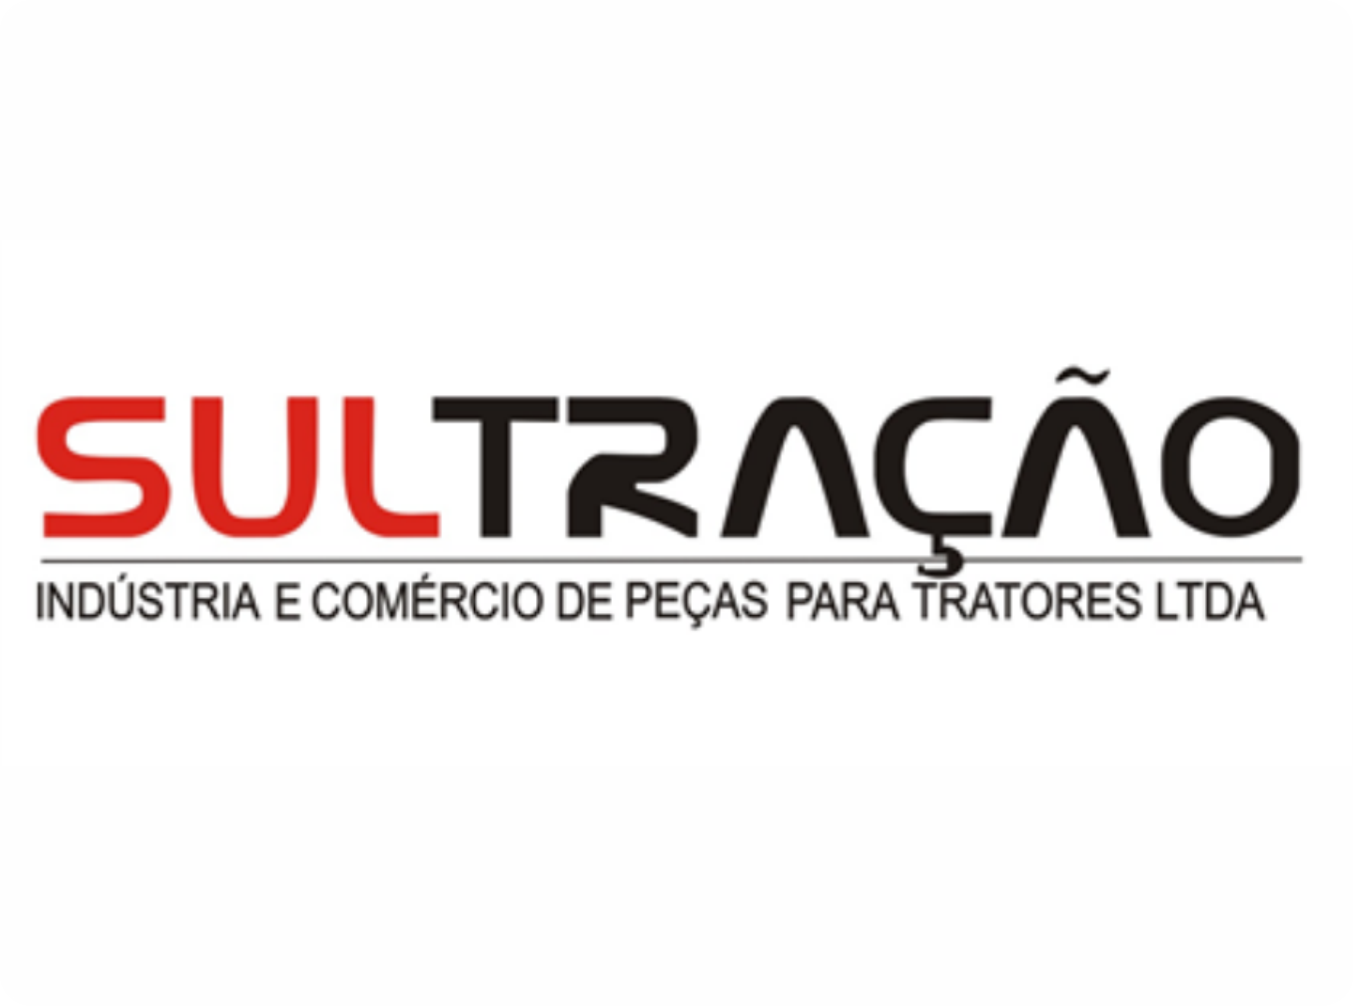 SULTRACAO